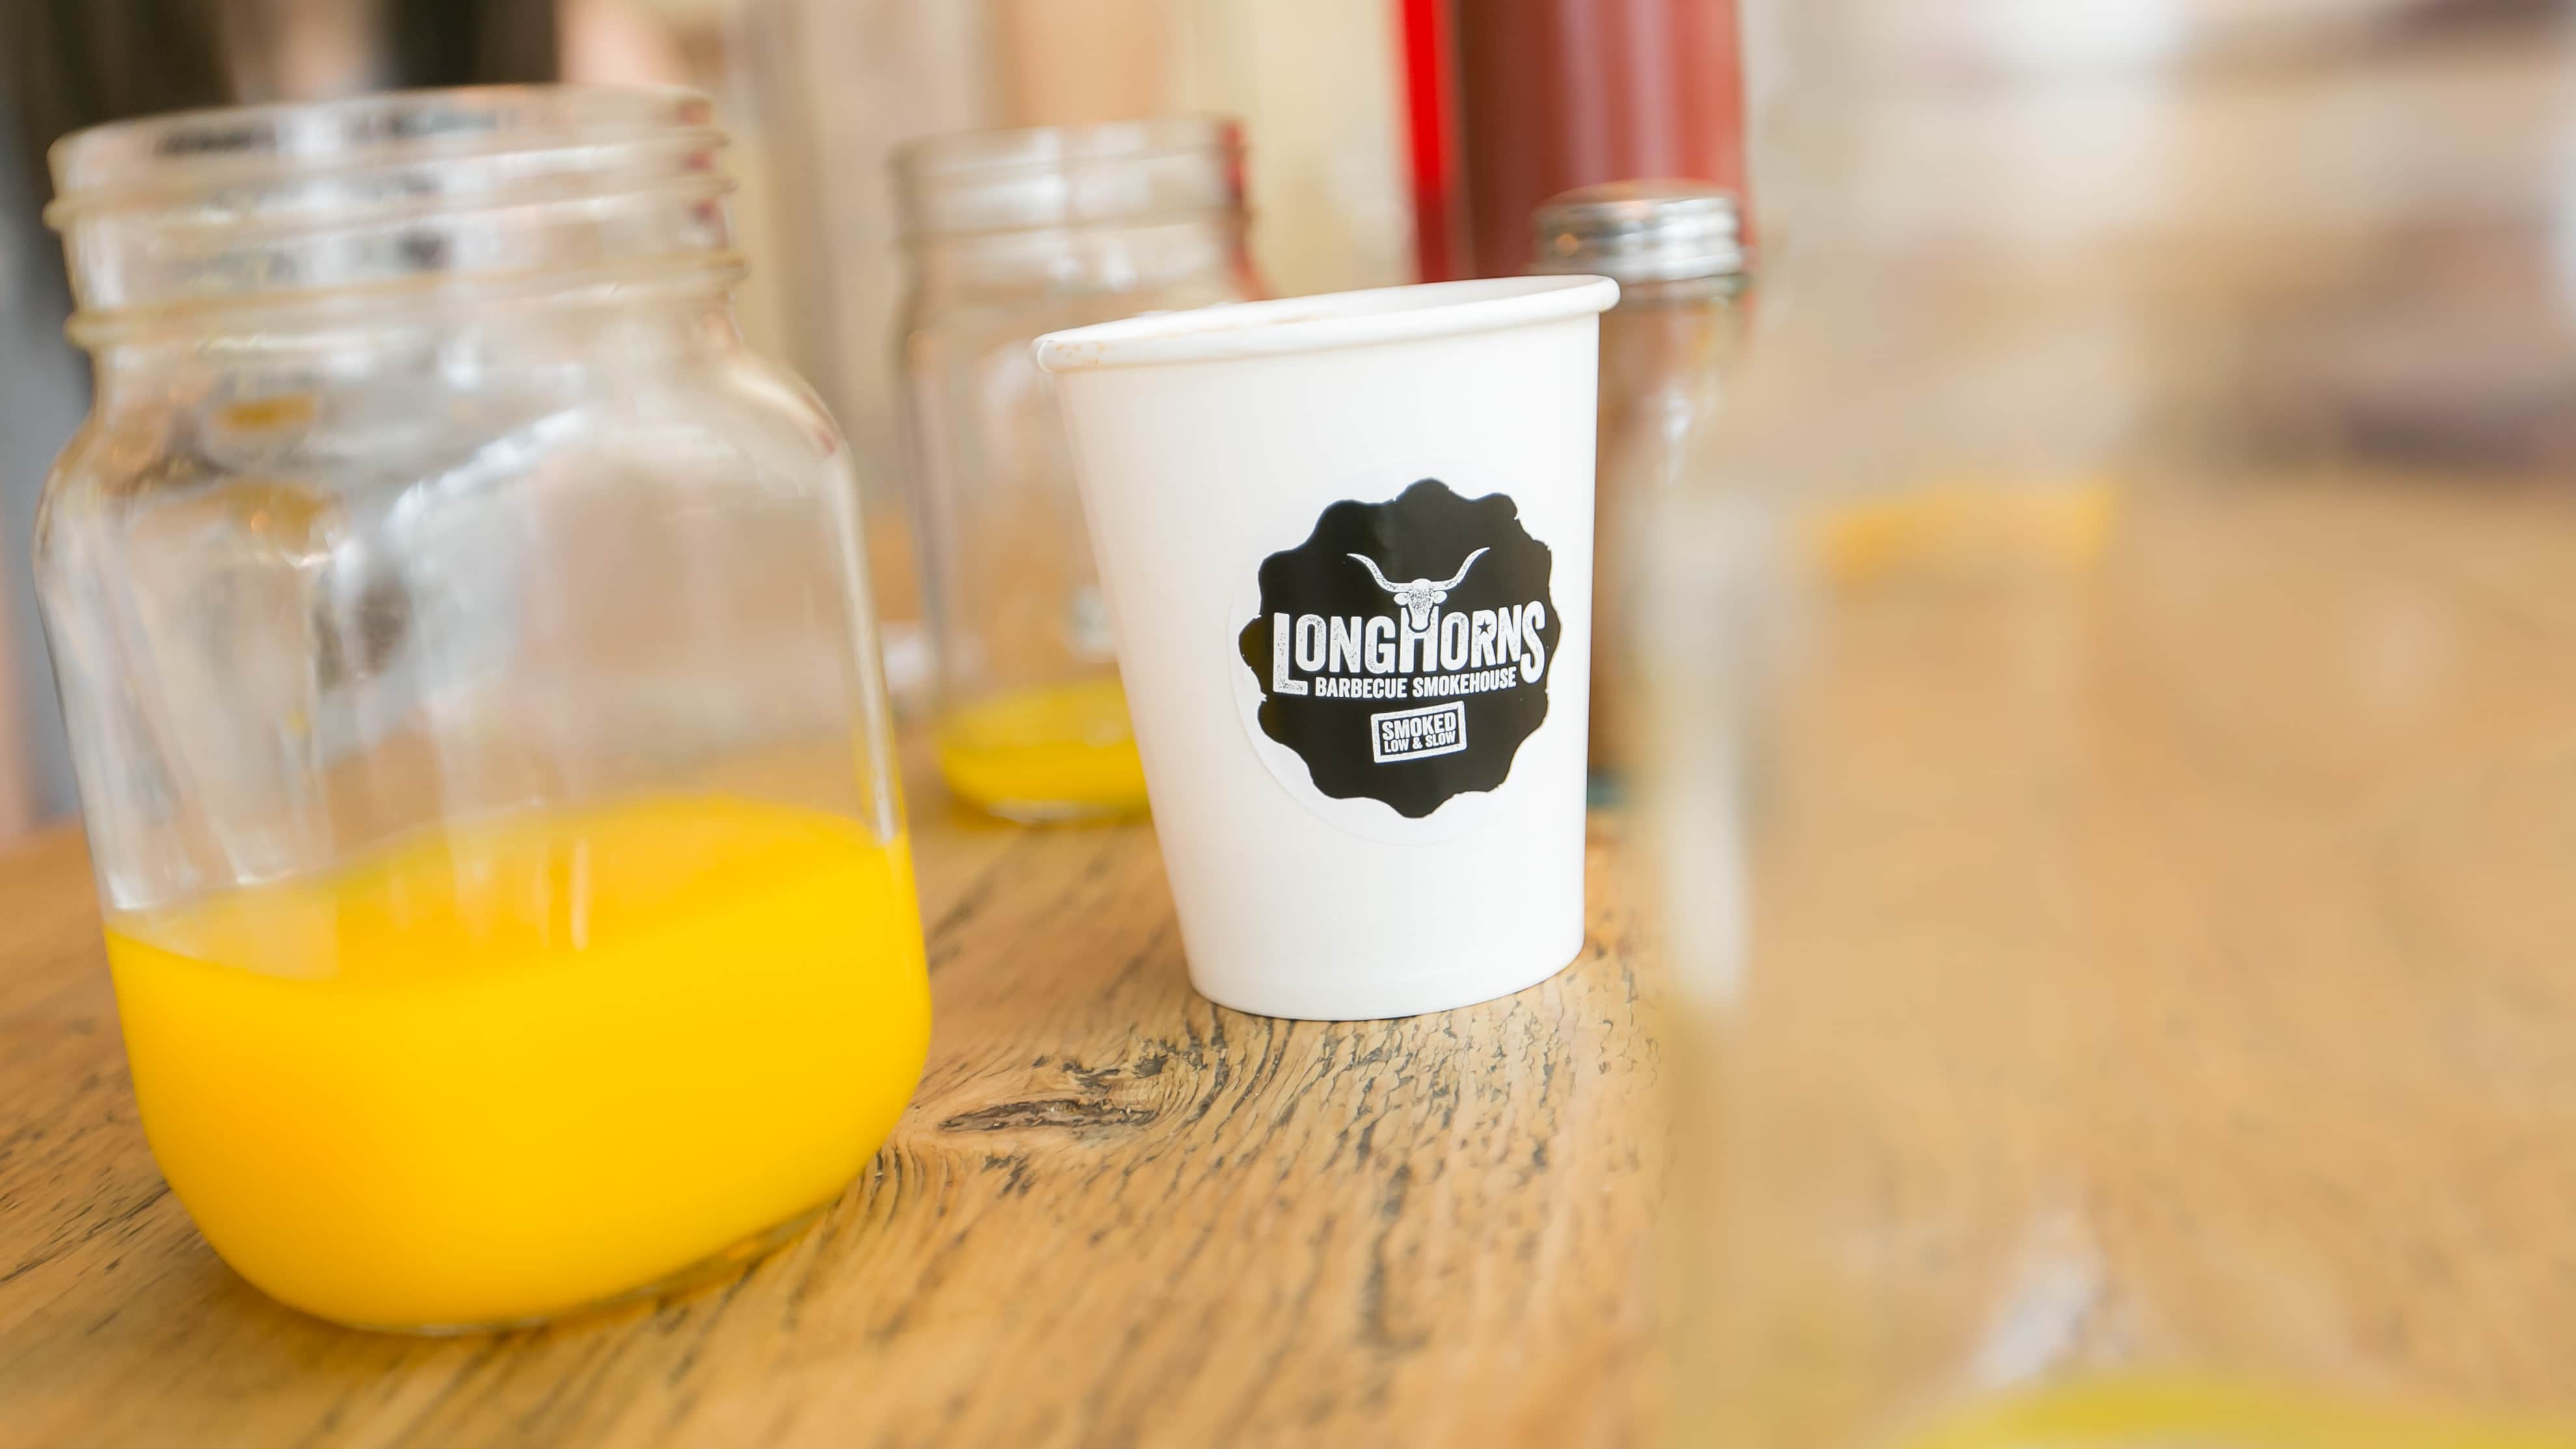 Orange juice in a glass jar alongside a Longhorns branded coffee cup